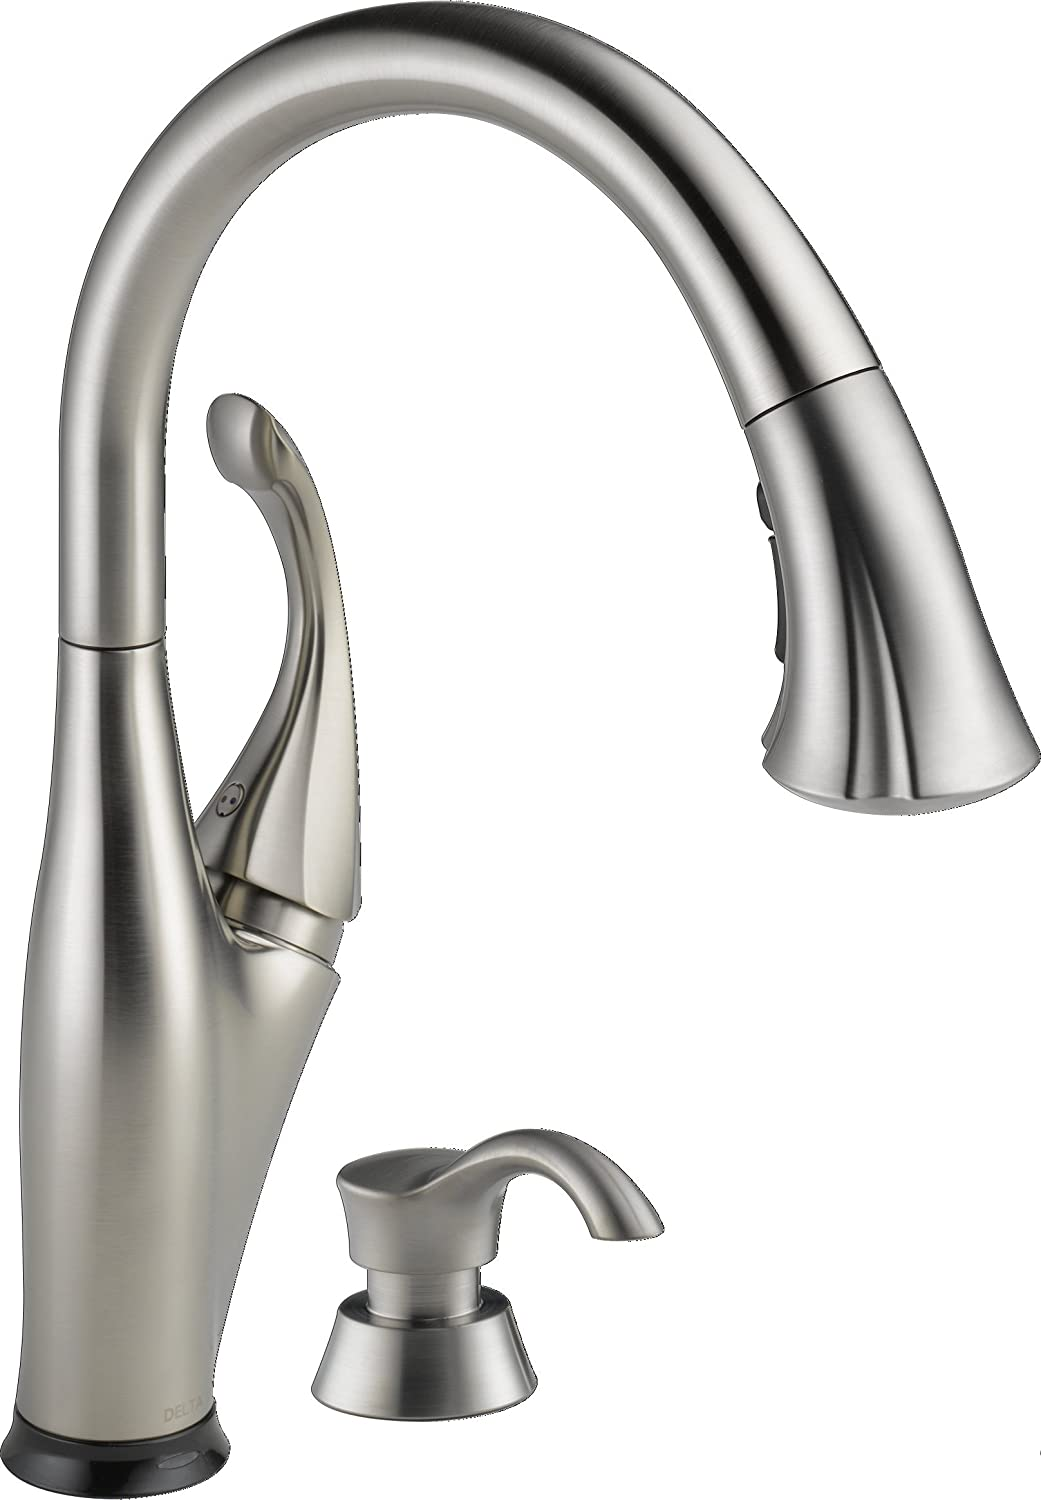 kristilei to faucets step single kitchen with handle additional art com faucet by ideas repair fancy delta fixing guide